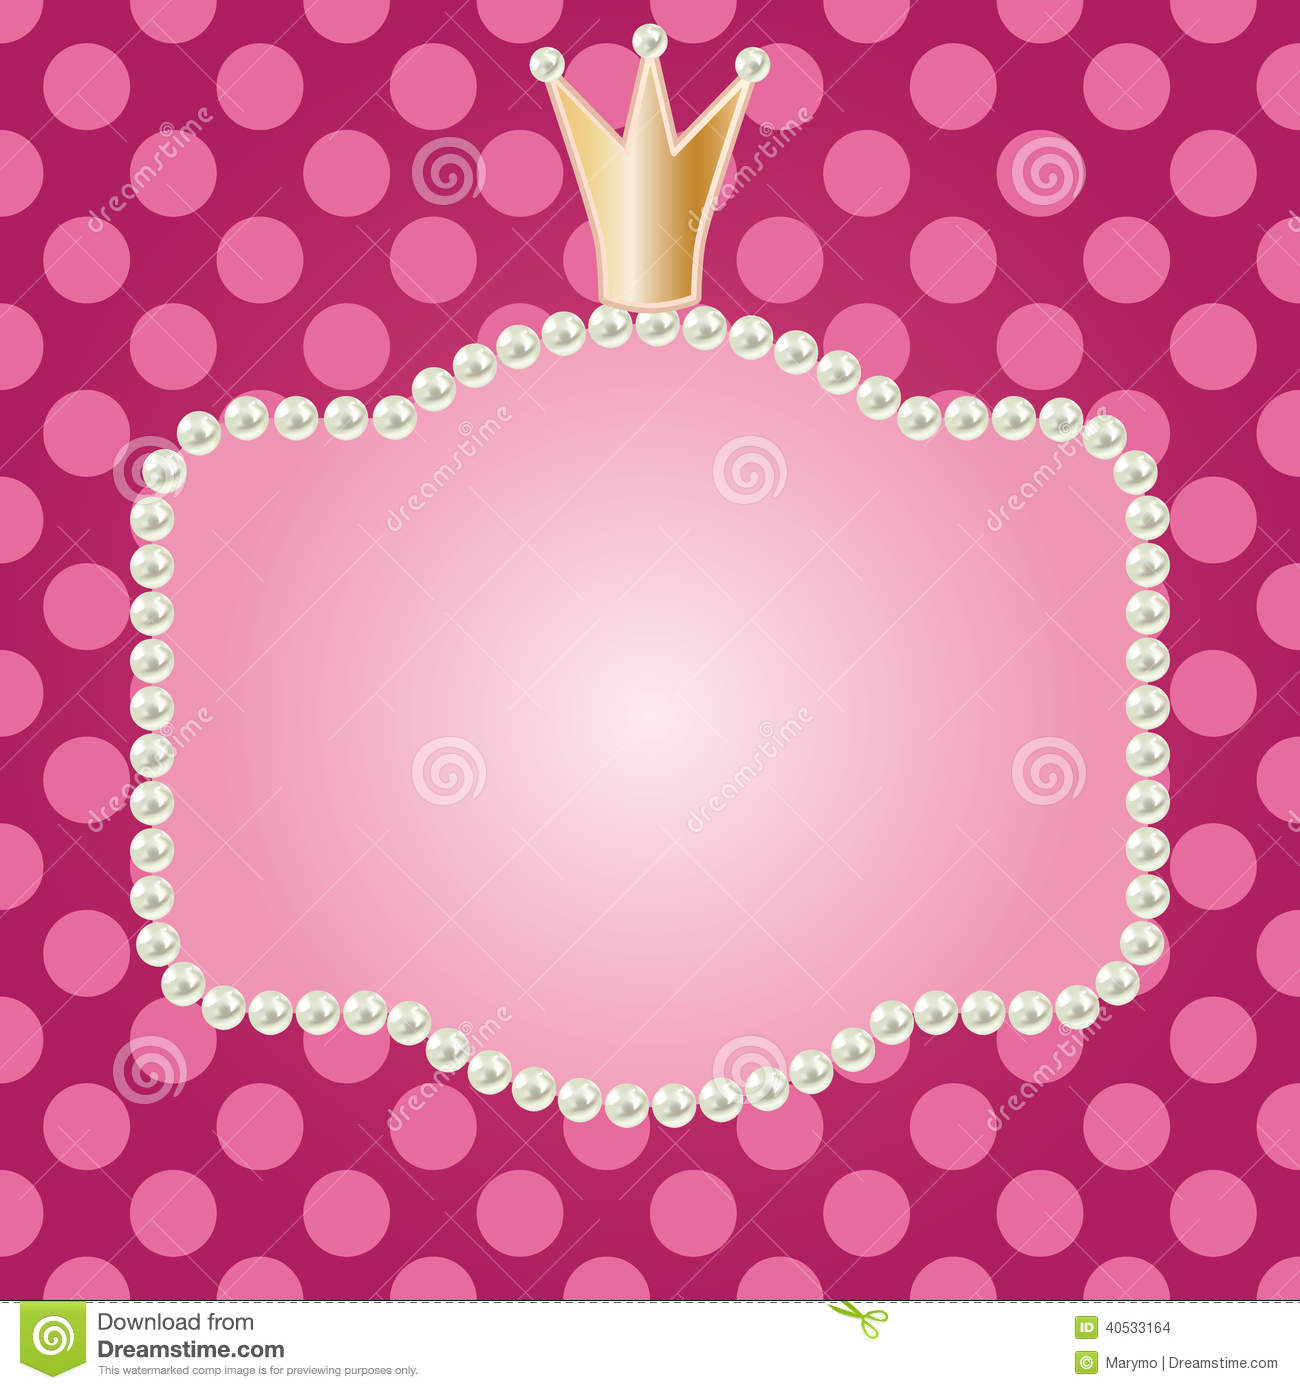 Realistic Pearls Frame With Crown Stock Vector - Illustration of ...